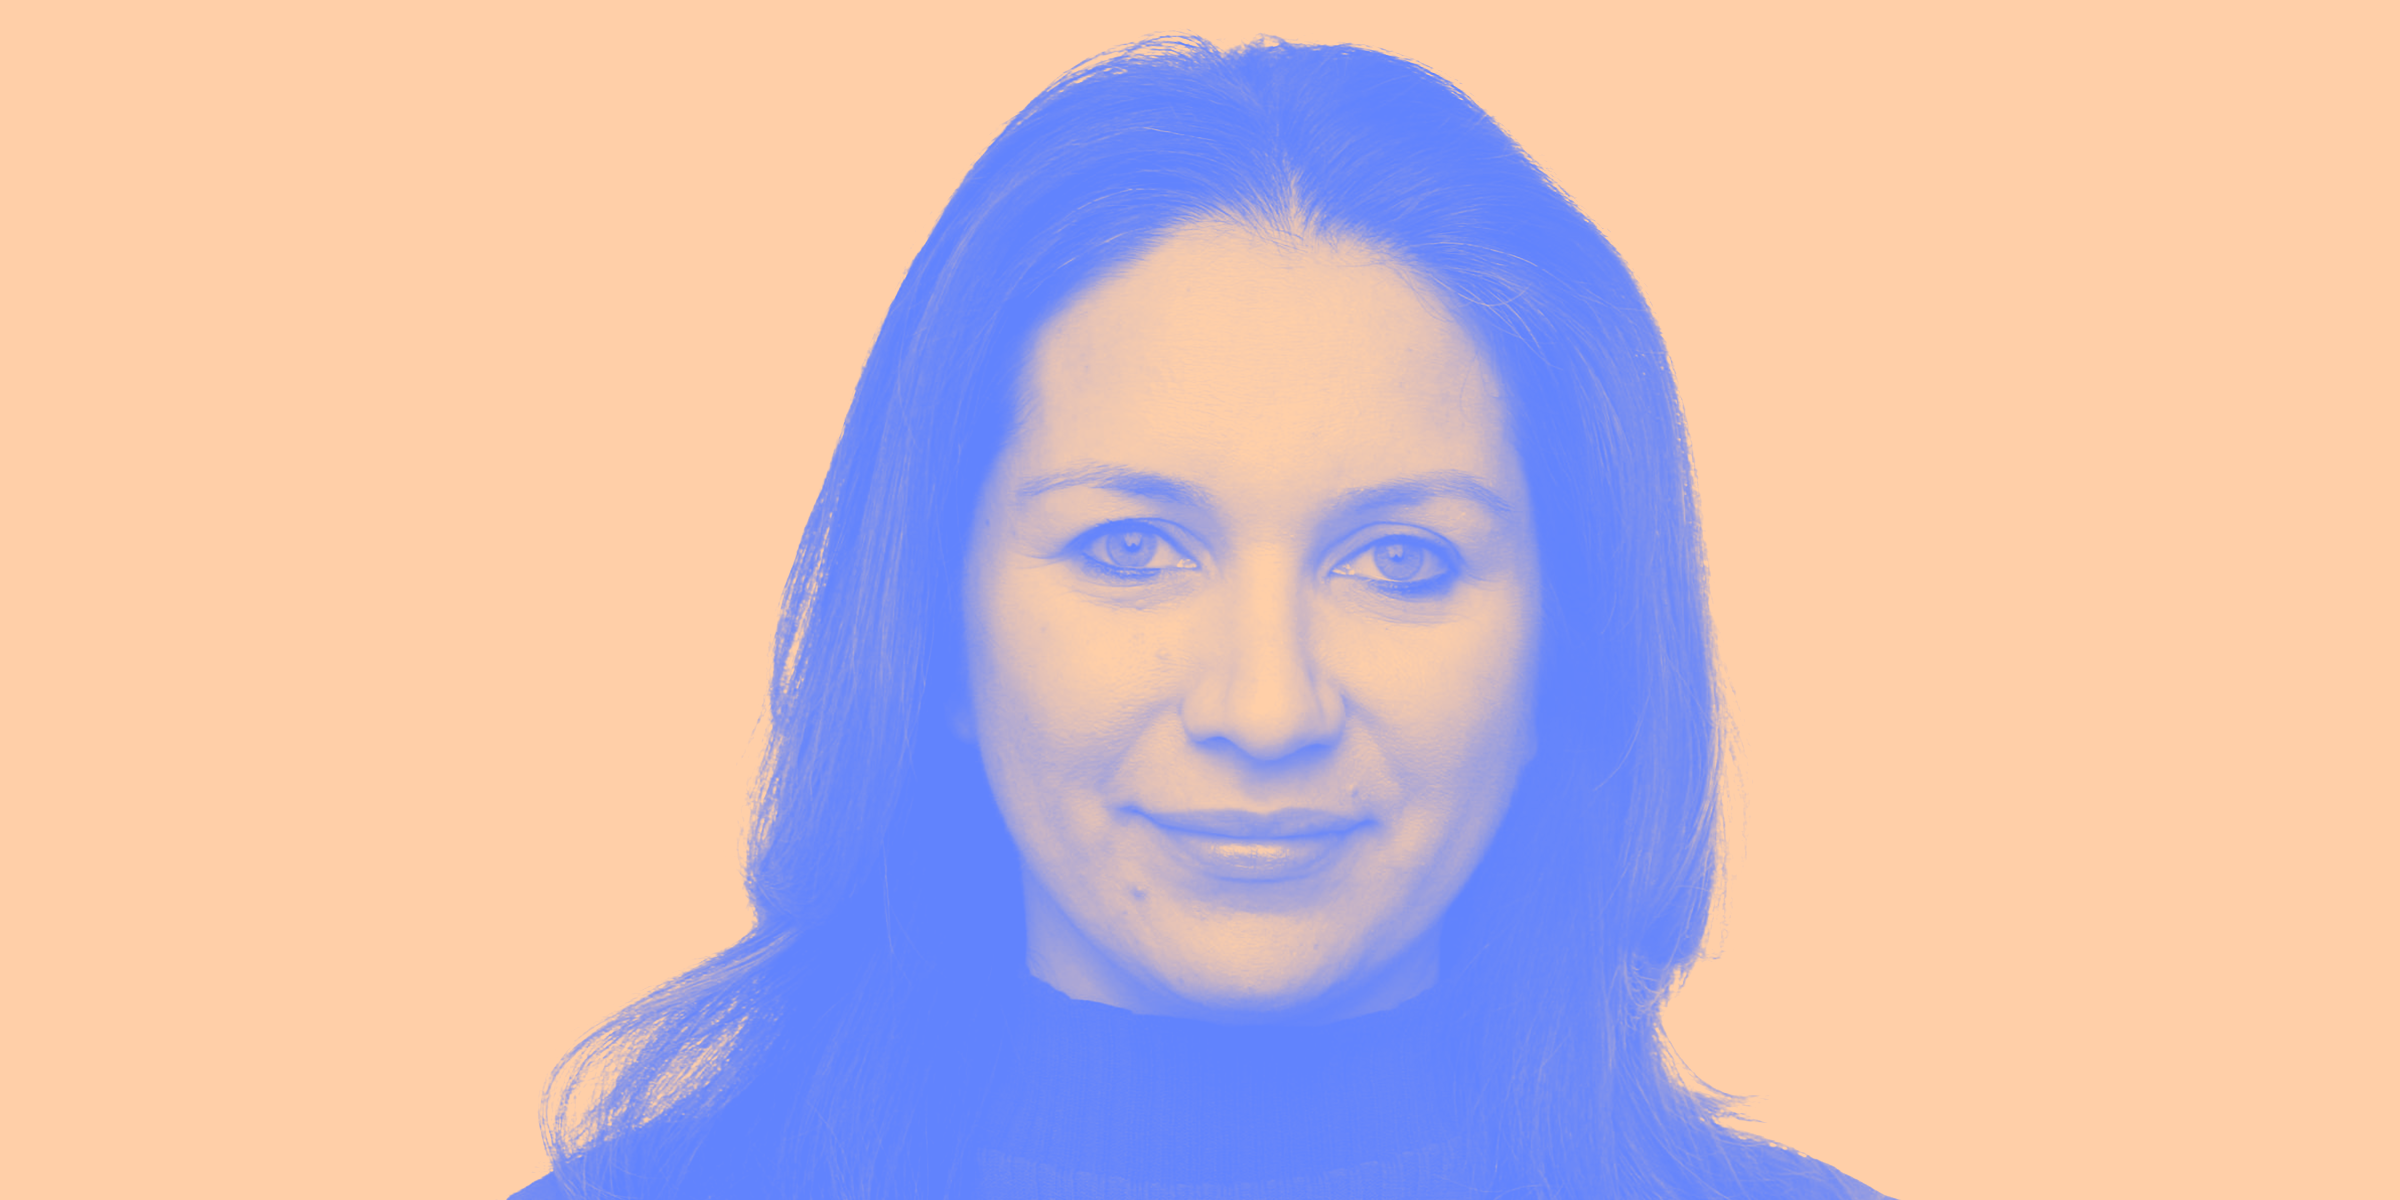 War Journalist Rukmini Callimachi on New Motherhood and Quitting Coffee